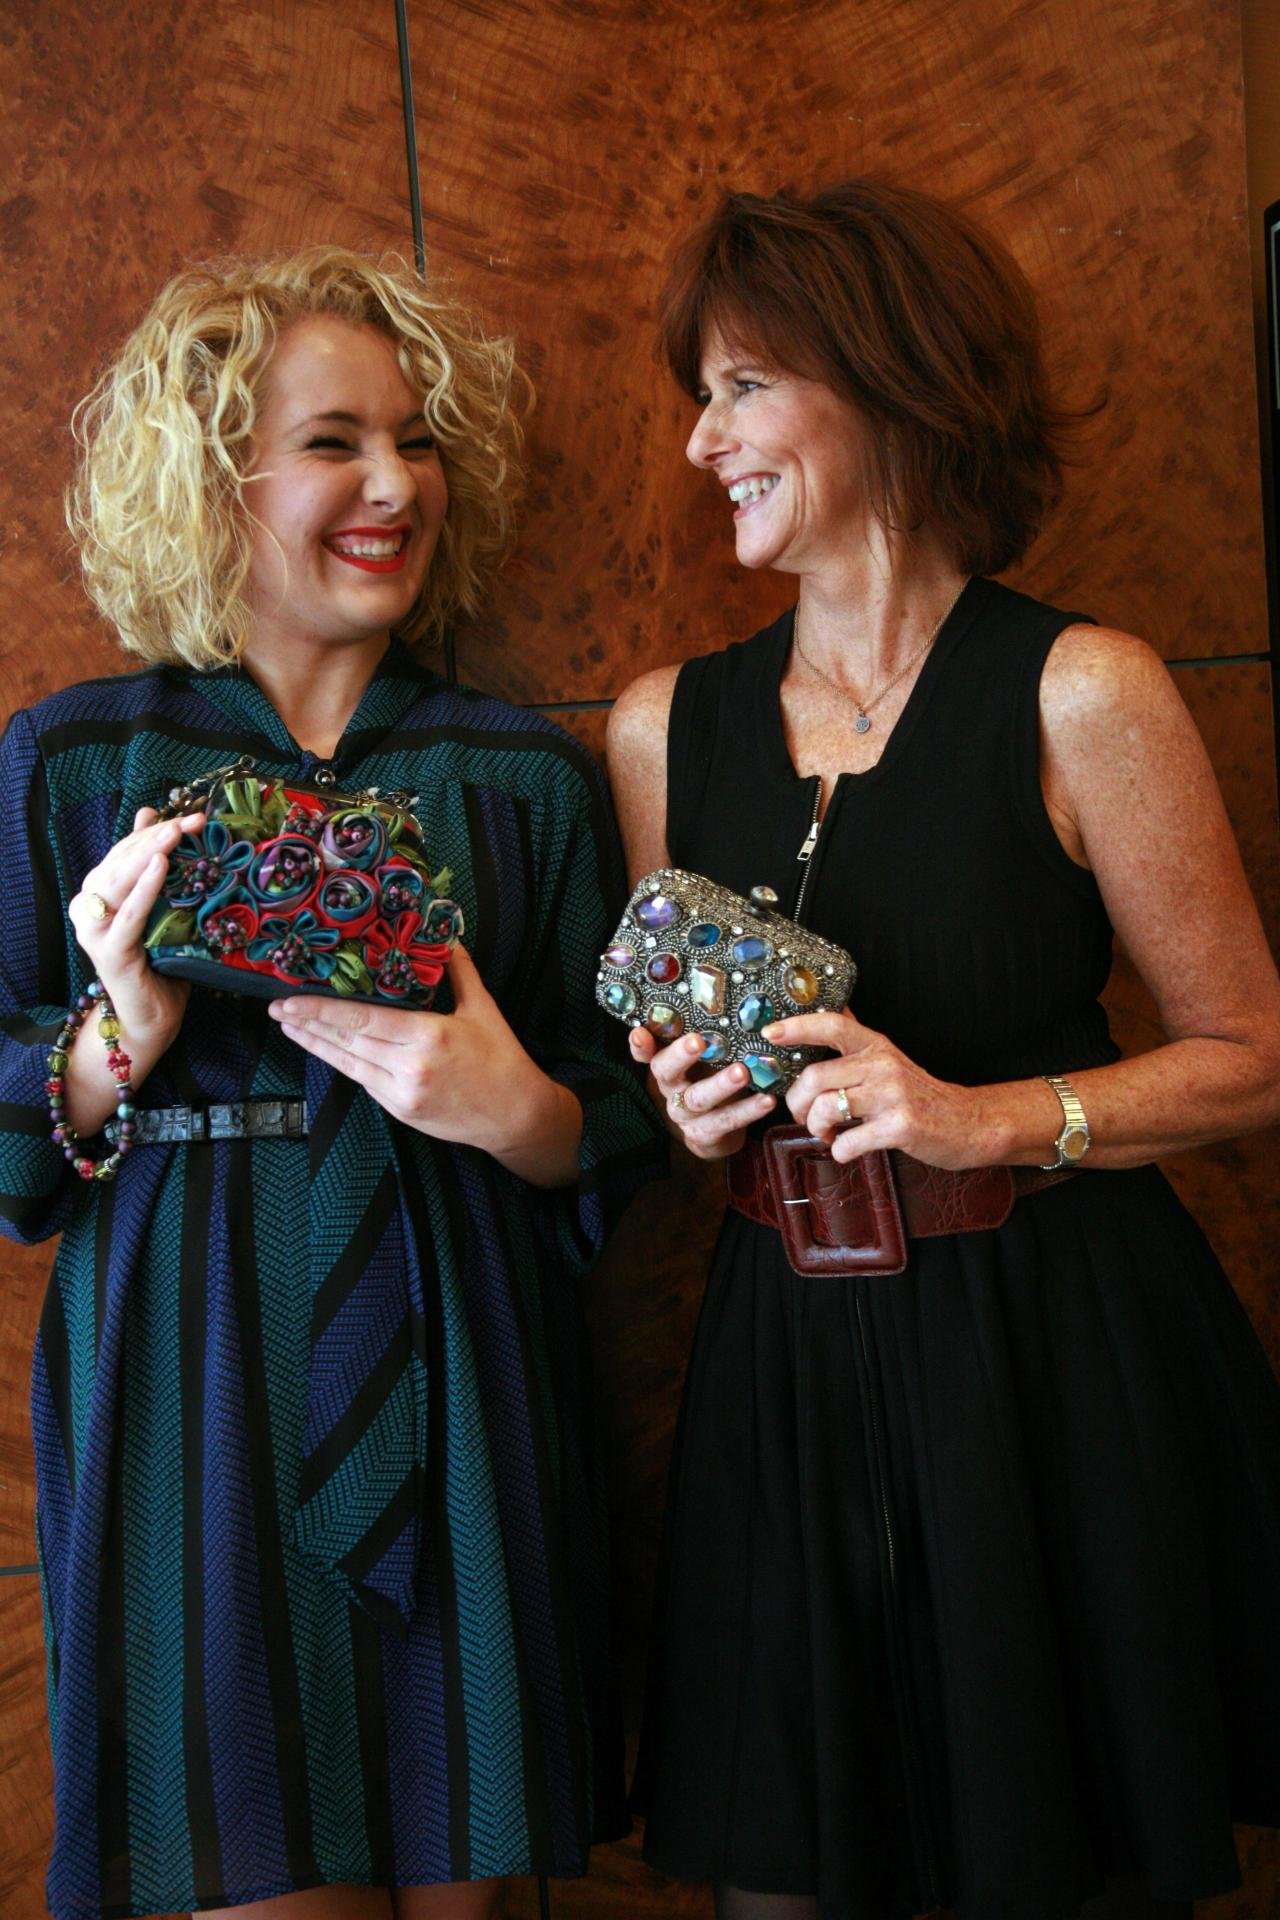 BLOOPER: Mary Frances and the VIP laughing in between posed shots. It was so much fun getting to hang out and interview Mary Frances at Belk Phipps in Atlanta!